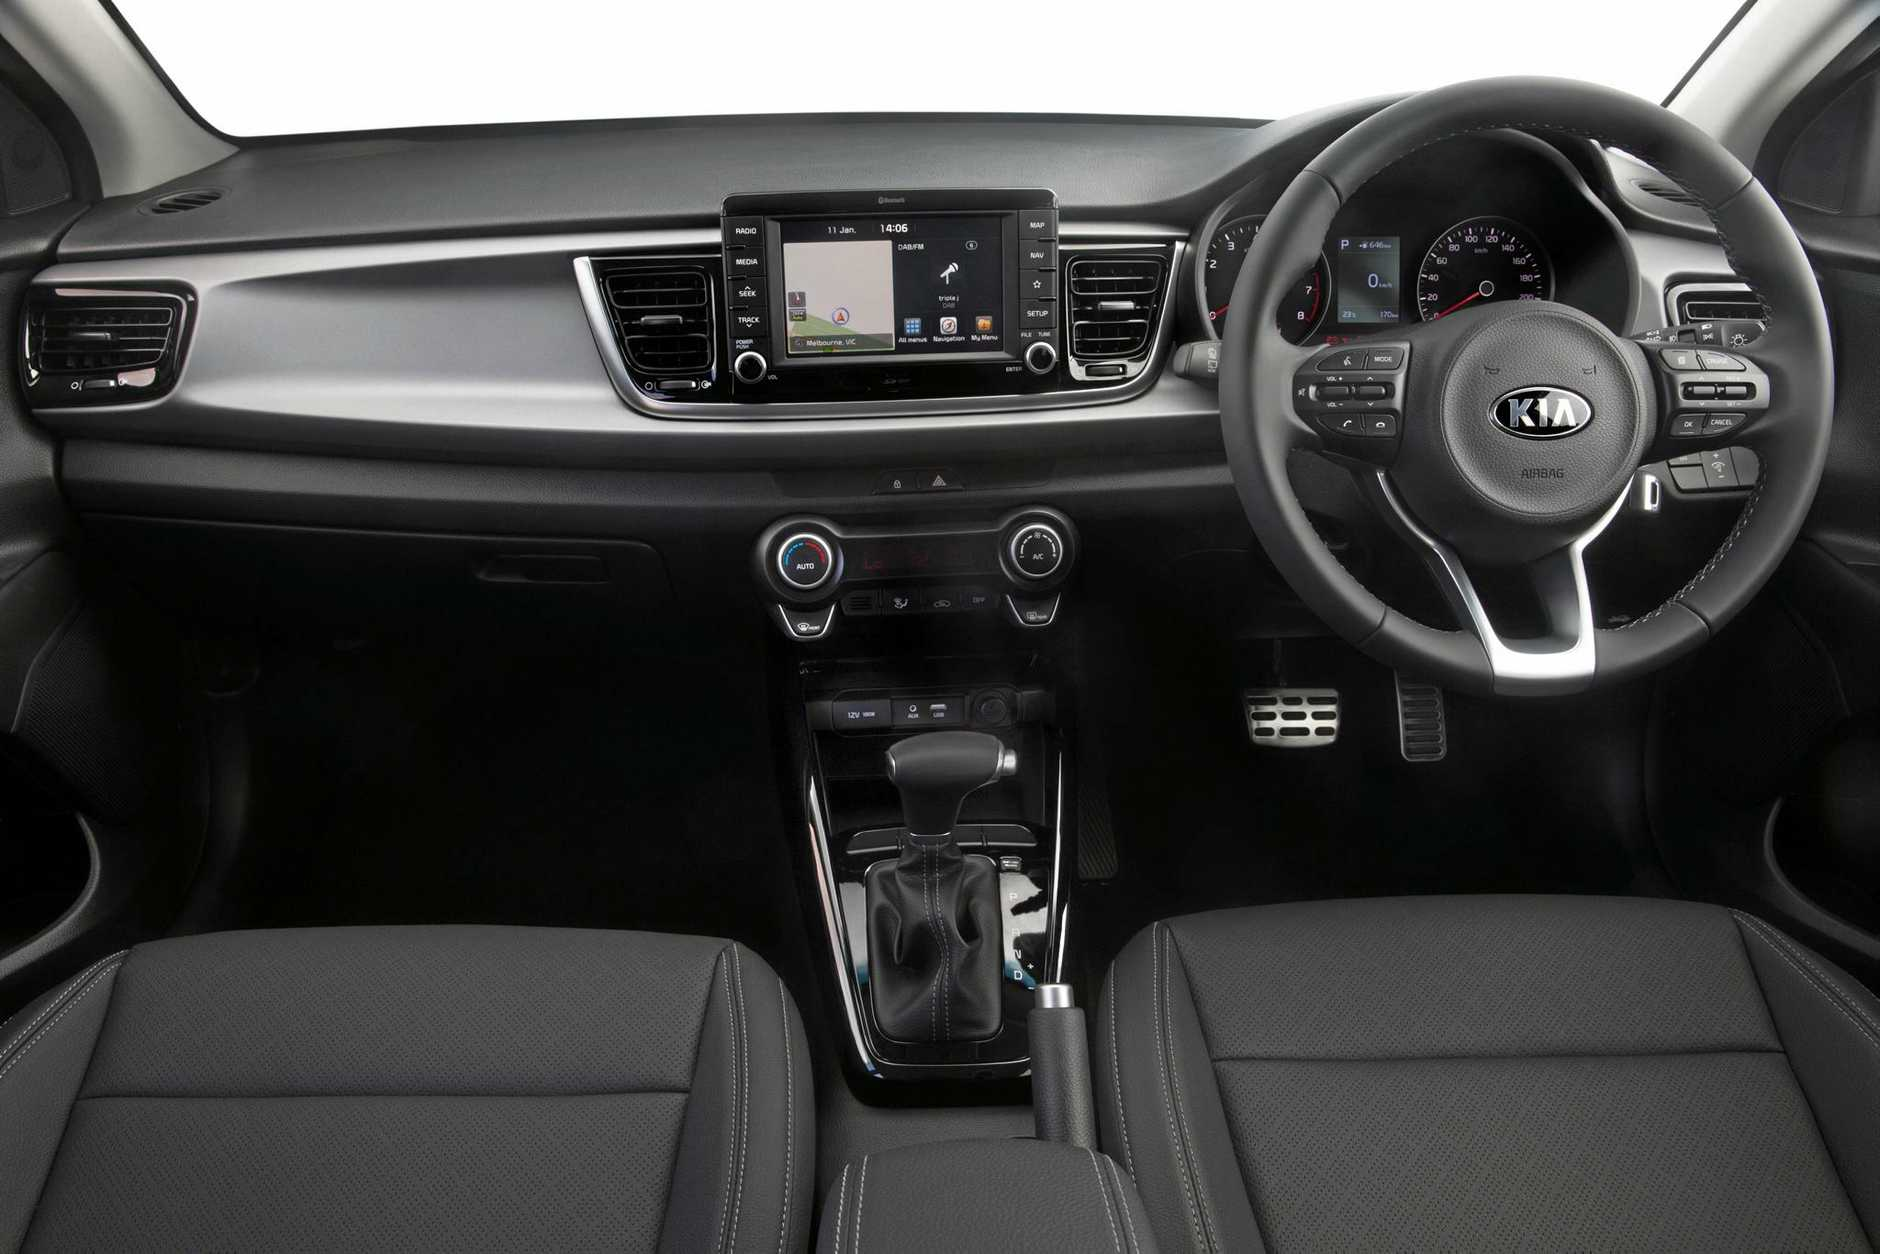 Inside the 2017 Kia Rio SLi.